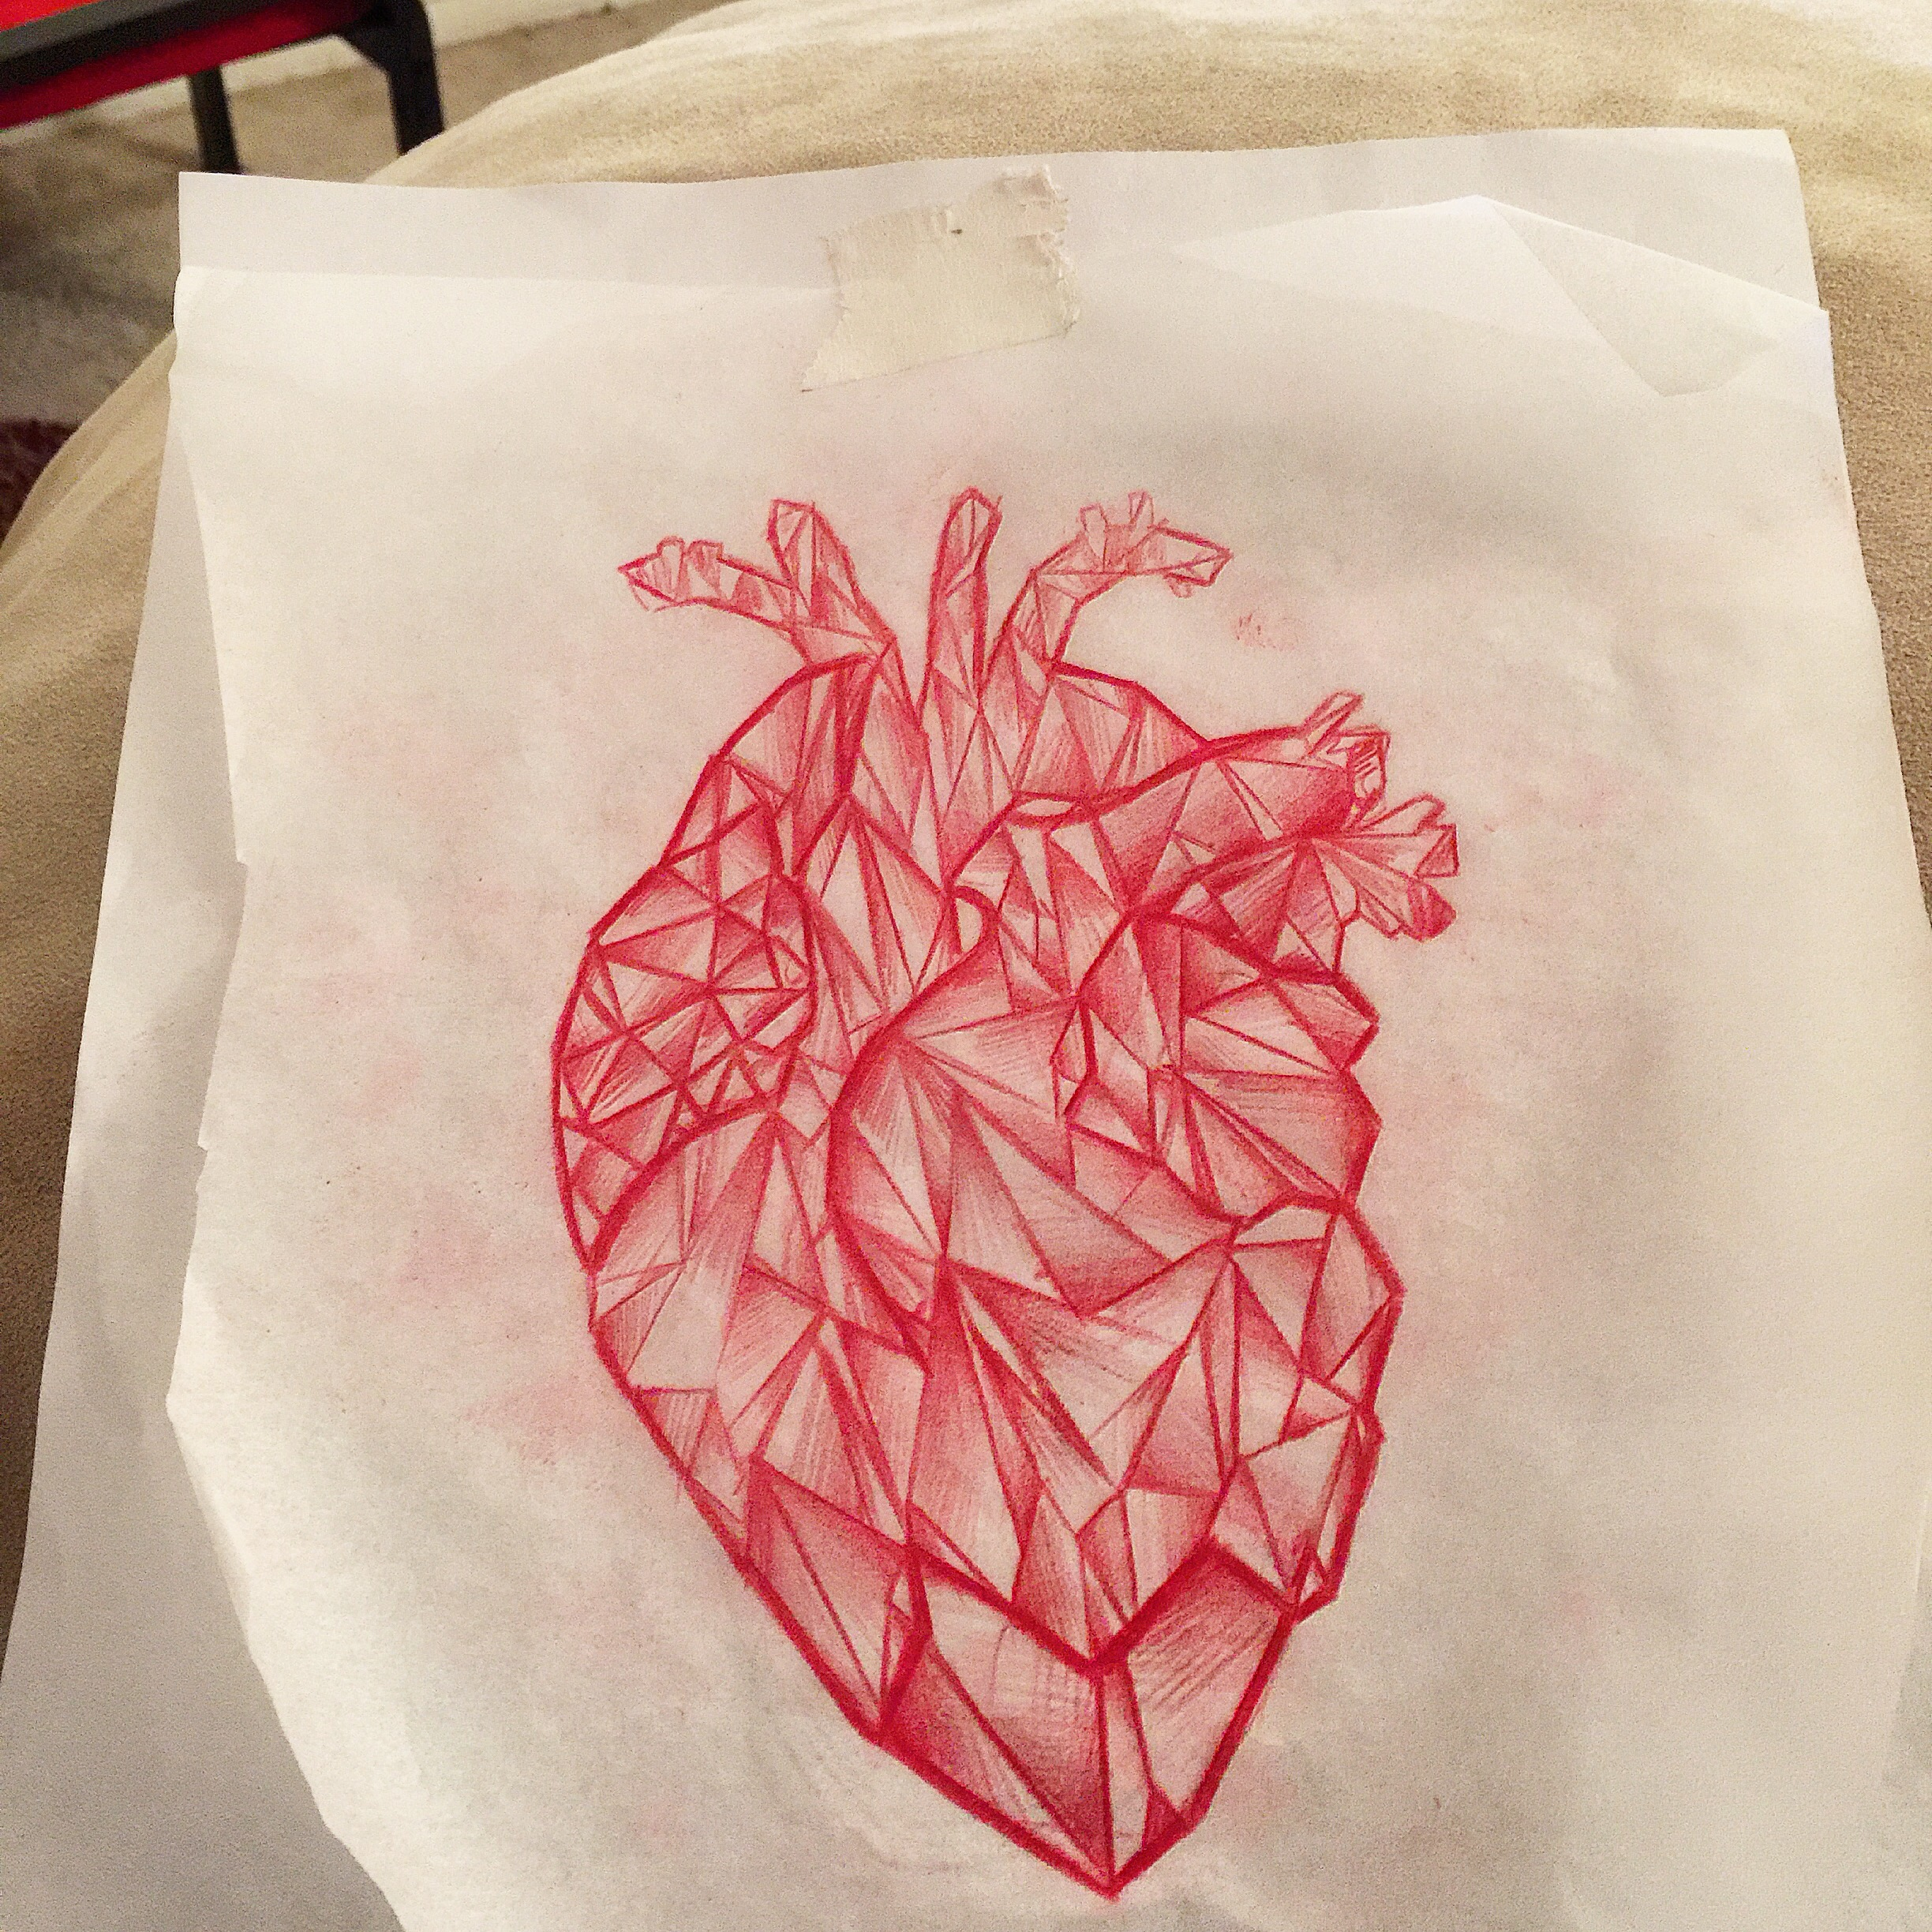 Crystal Heart Drawing At Getdrawings Free For Personal Use